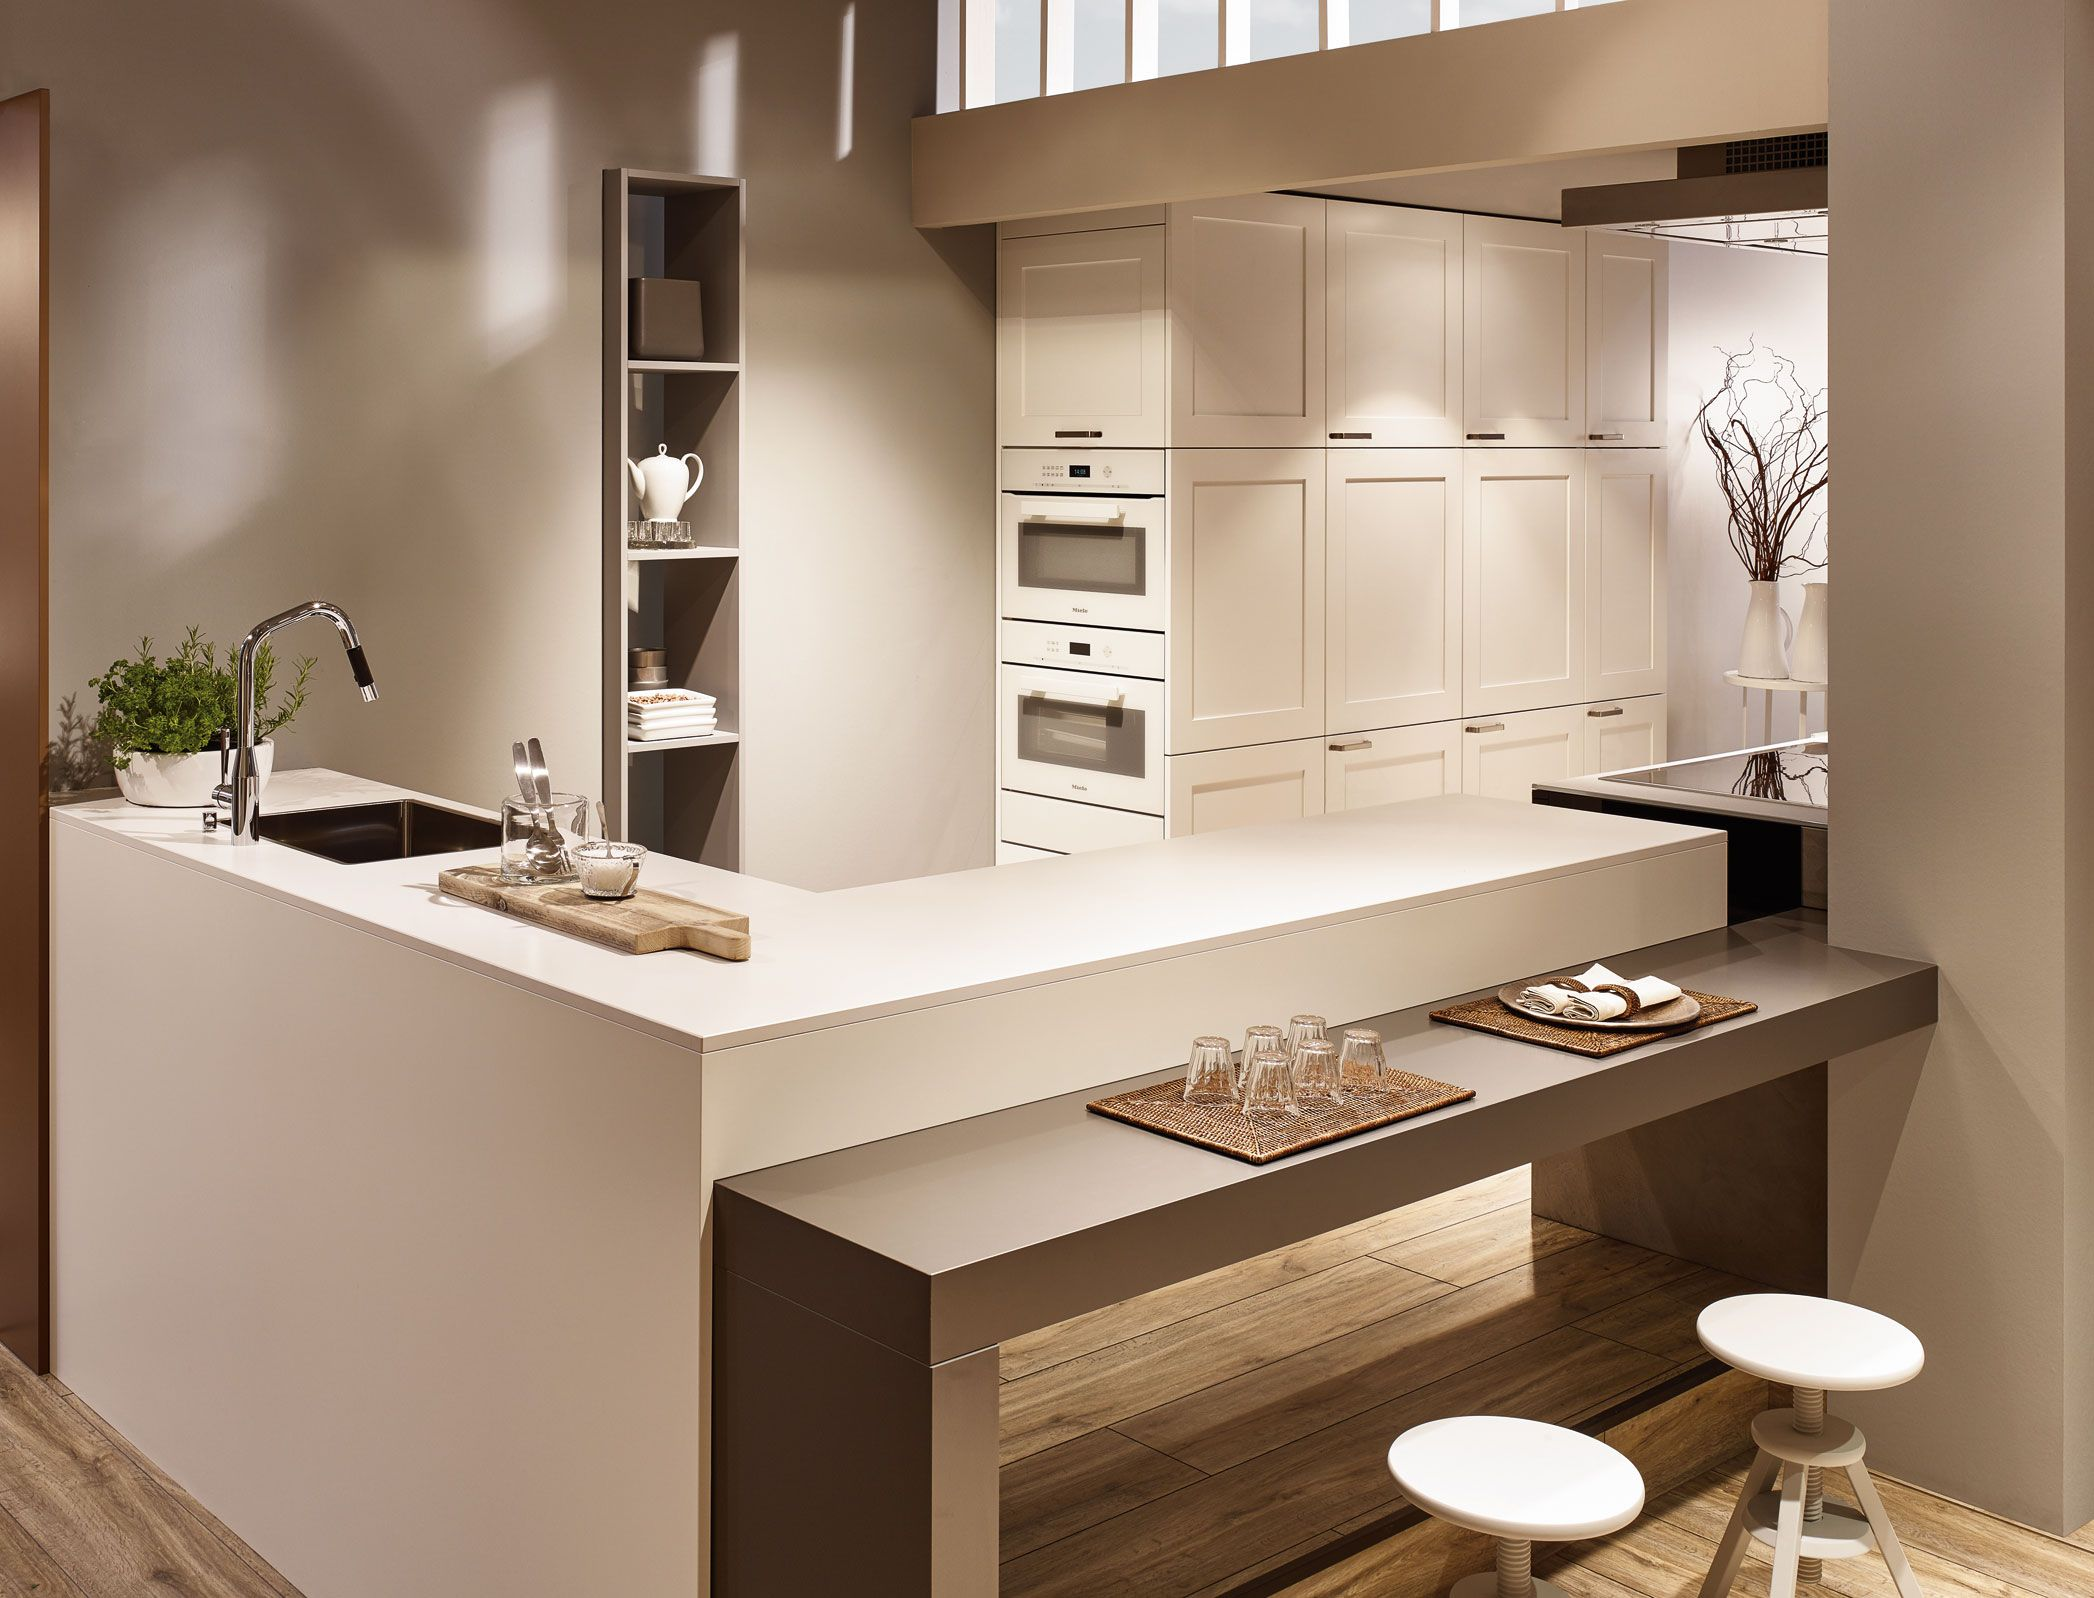 kh k che seidenmatt lackiert verkehrsweiss beton grau kh kitchen silky matt lacquered. Black Bedroom Furniture Sets. Home Design Ideas